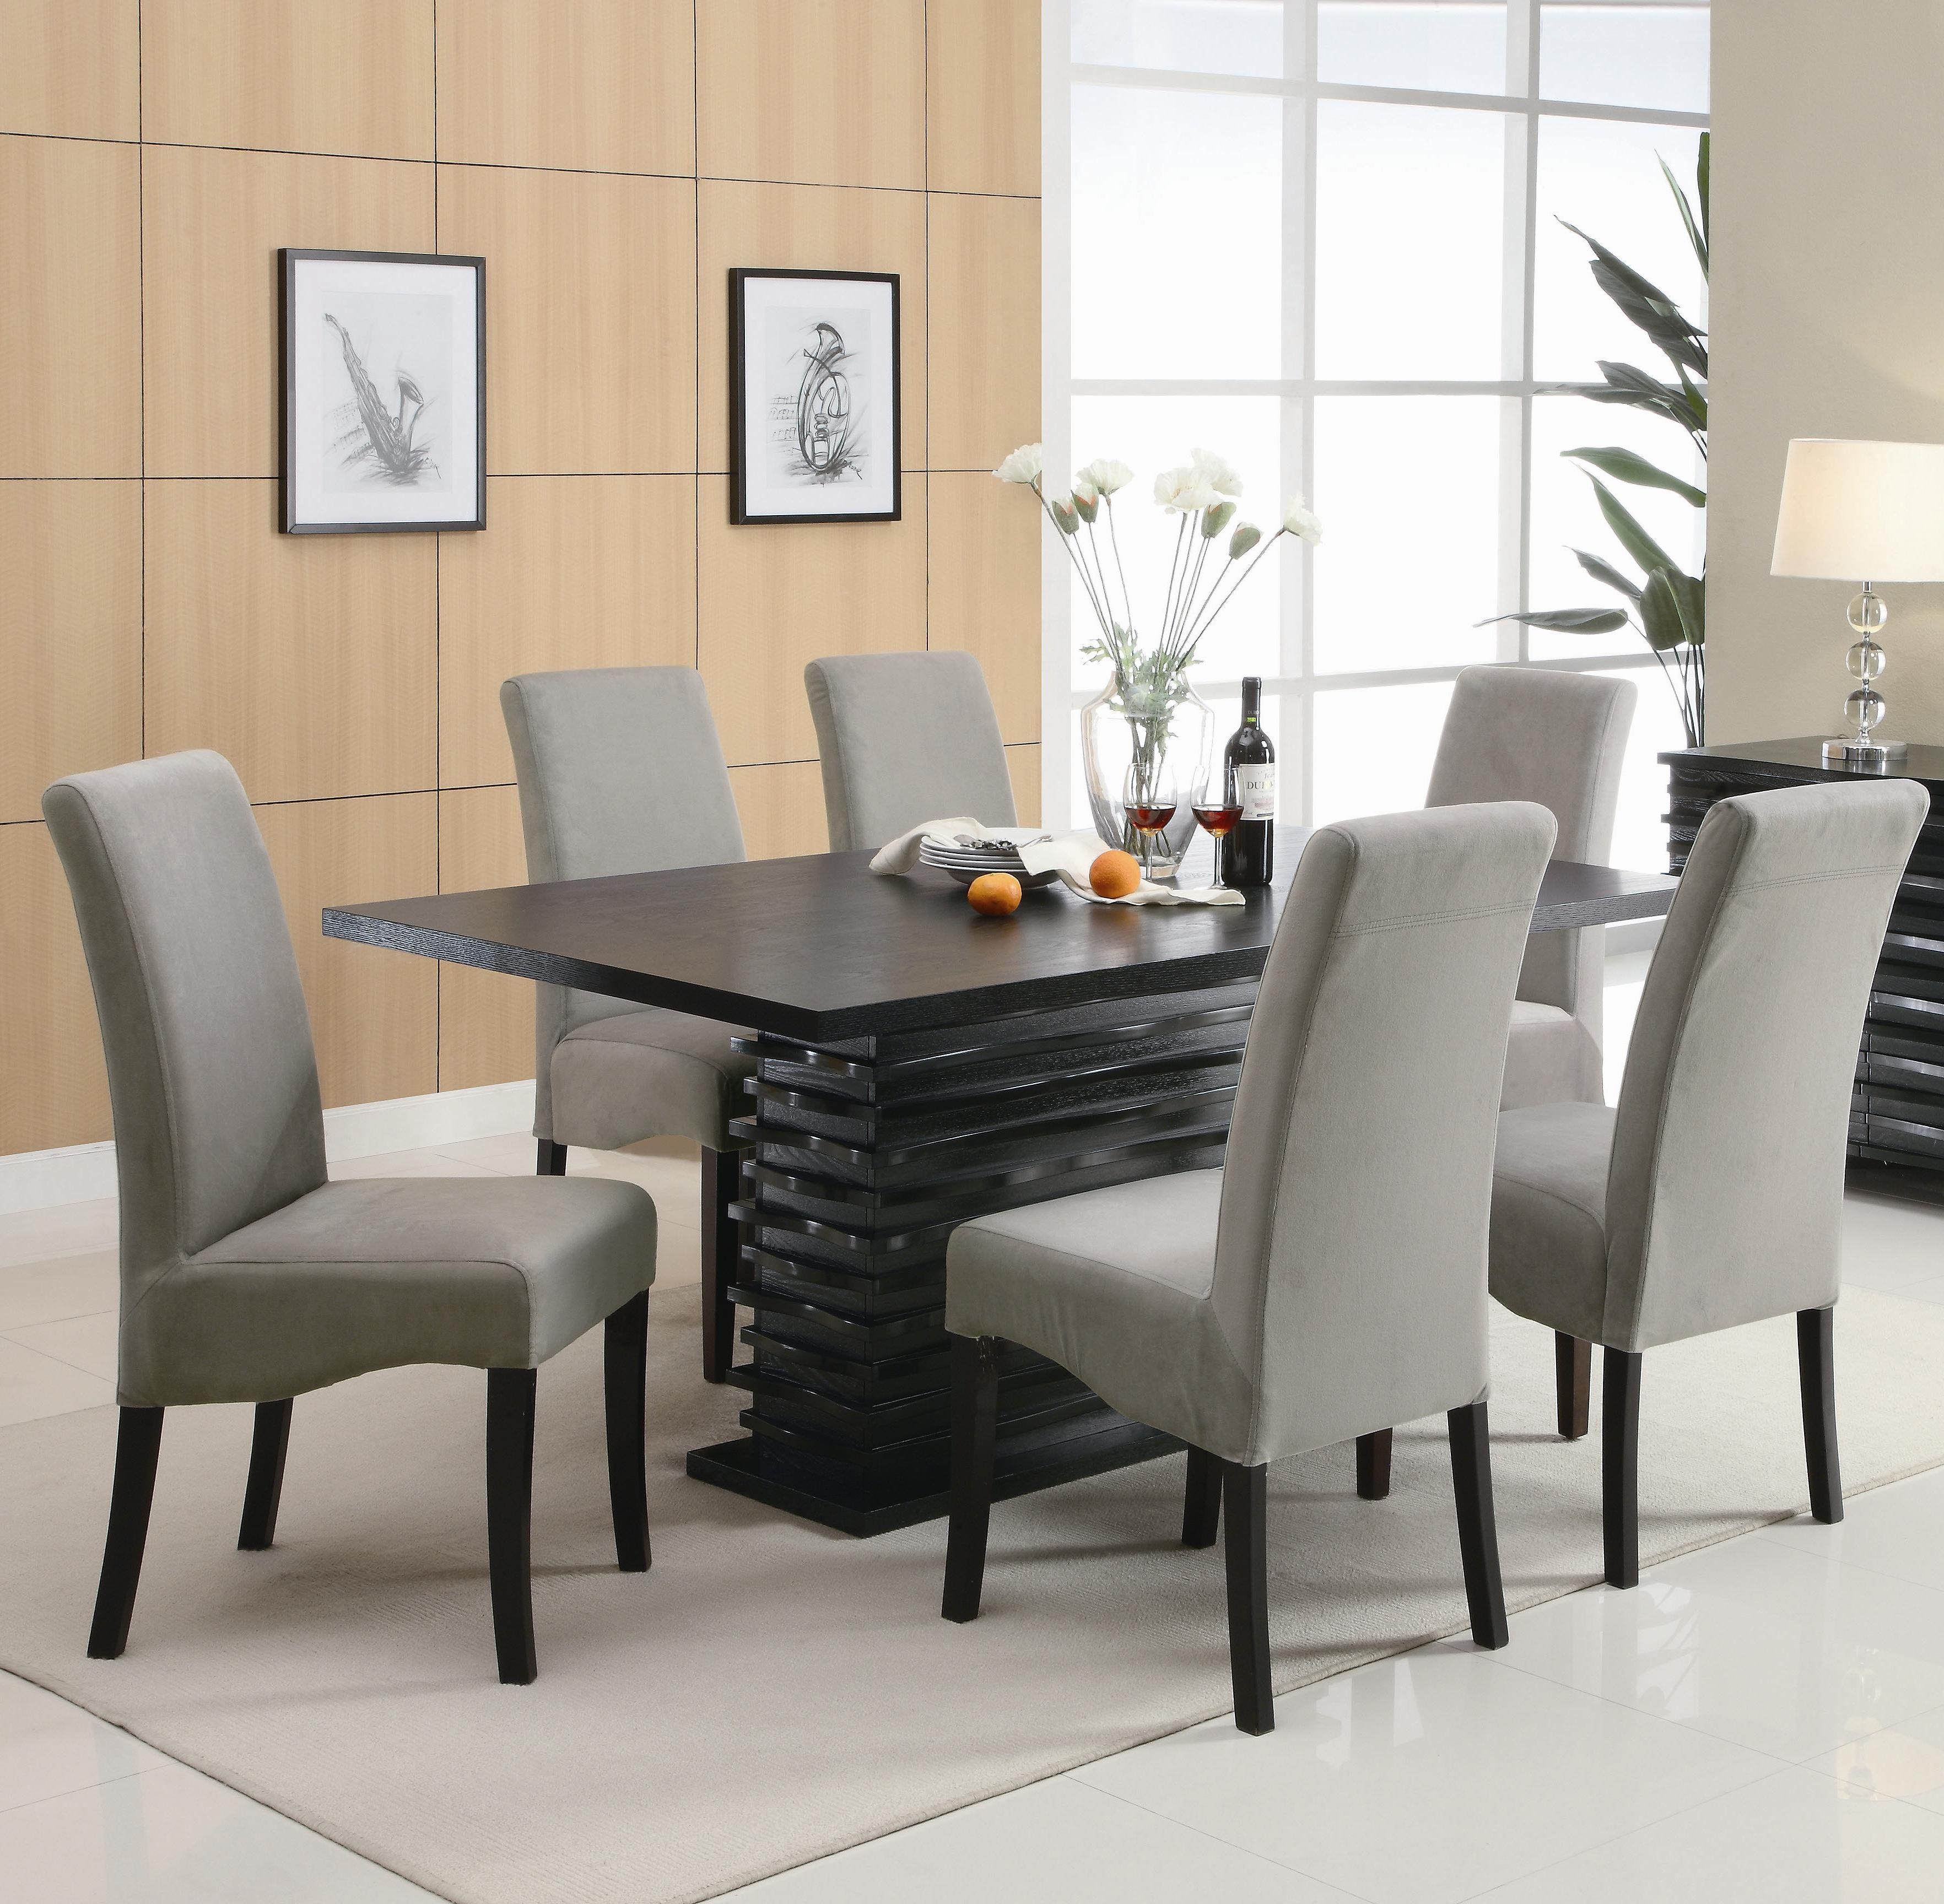 Table And Chair Sets Phoenix Glendale Tempe Scottsdale ...